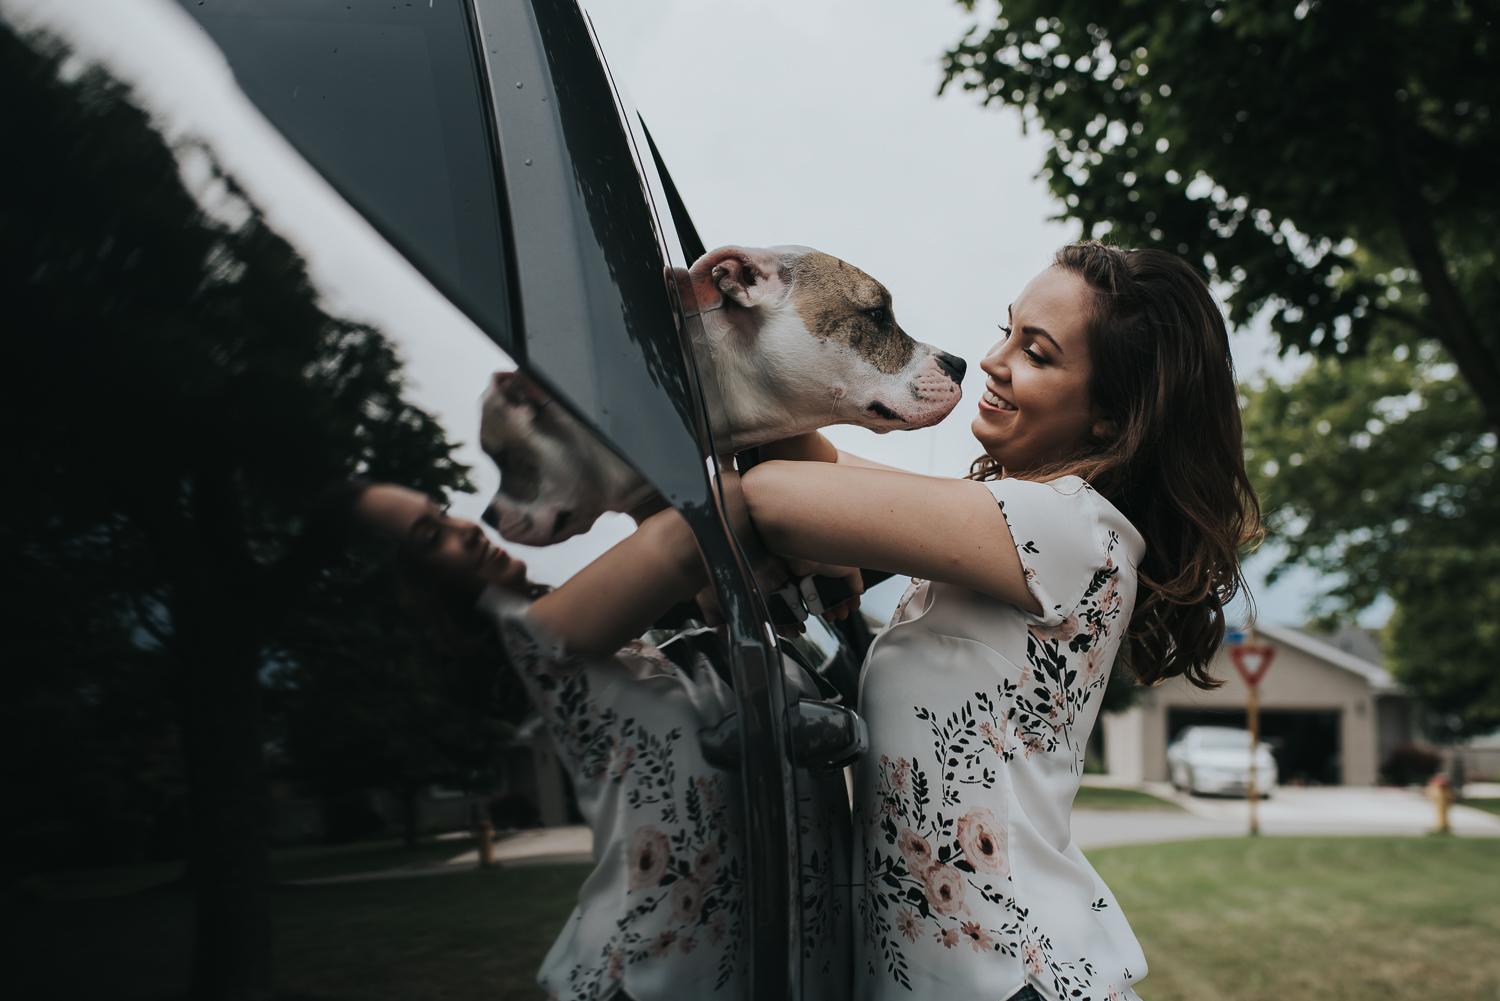 Bride being greeted by her dog out of black truck window